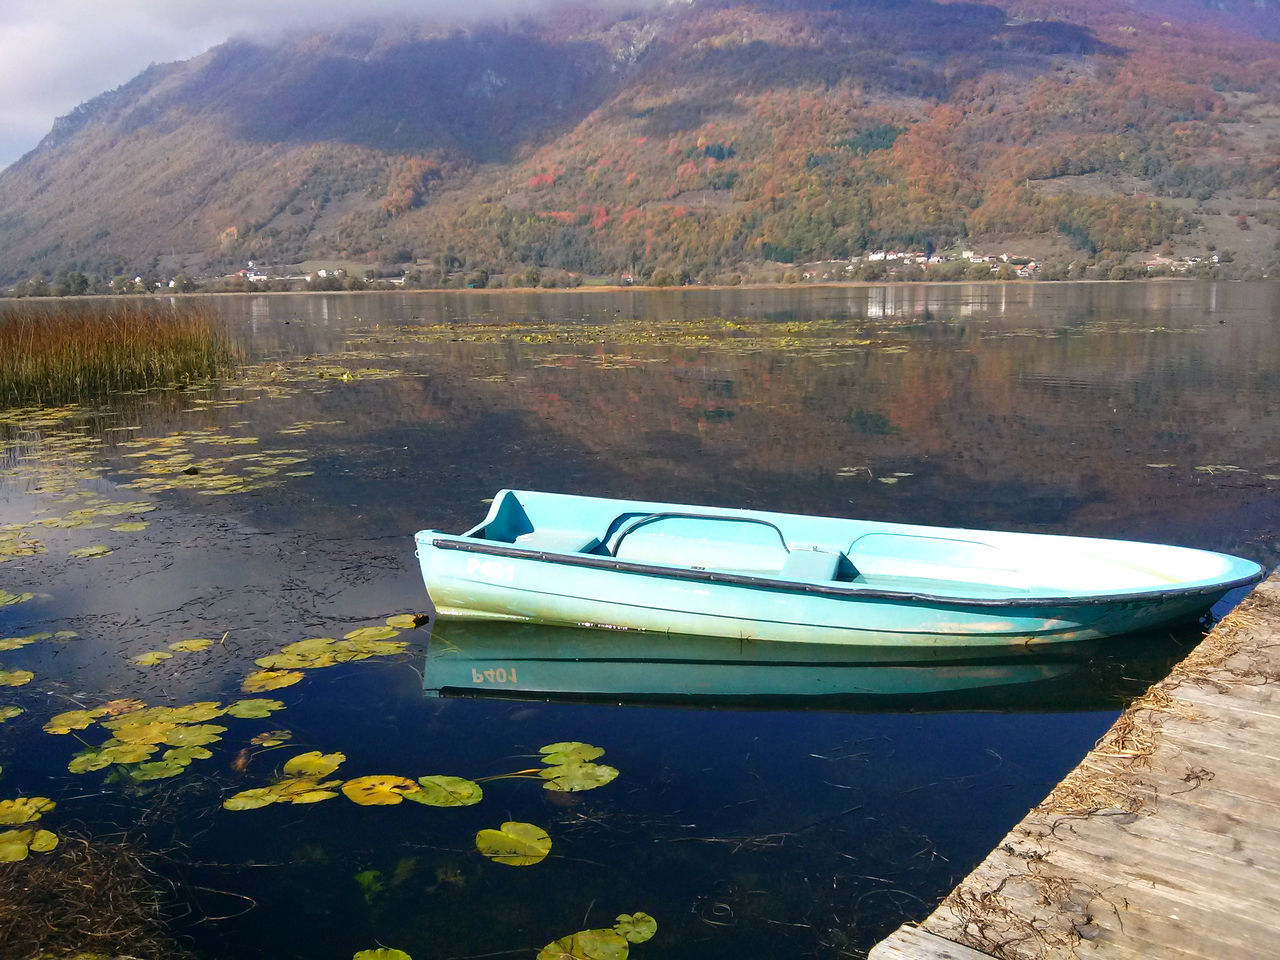 water, reflection, lake, nature, mountain, transportation, day, no people, nautical vessel, tranquility, mode of transport, outdoors, moored, beauty in nature, tranquil scene, scenics, flower, tree